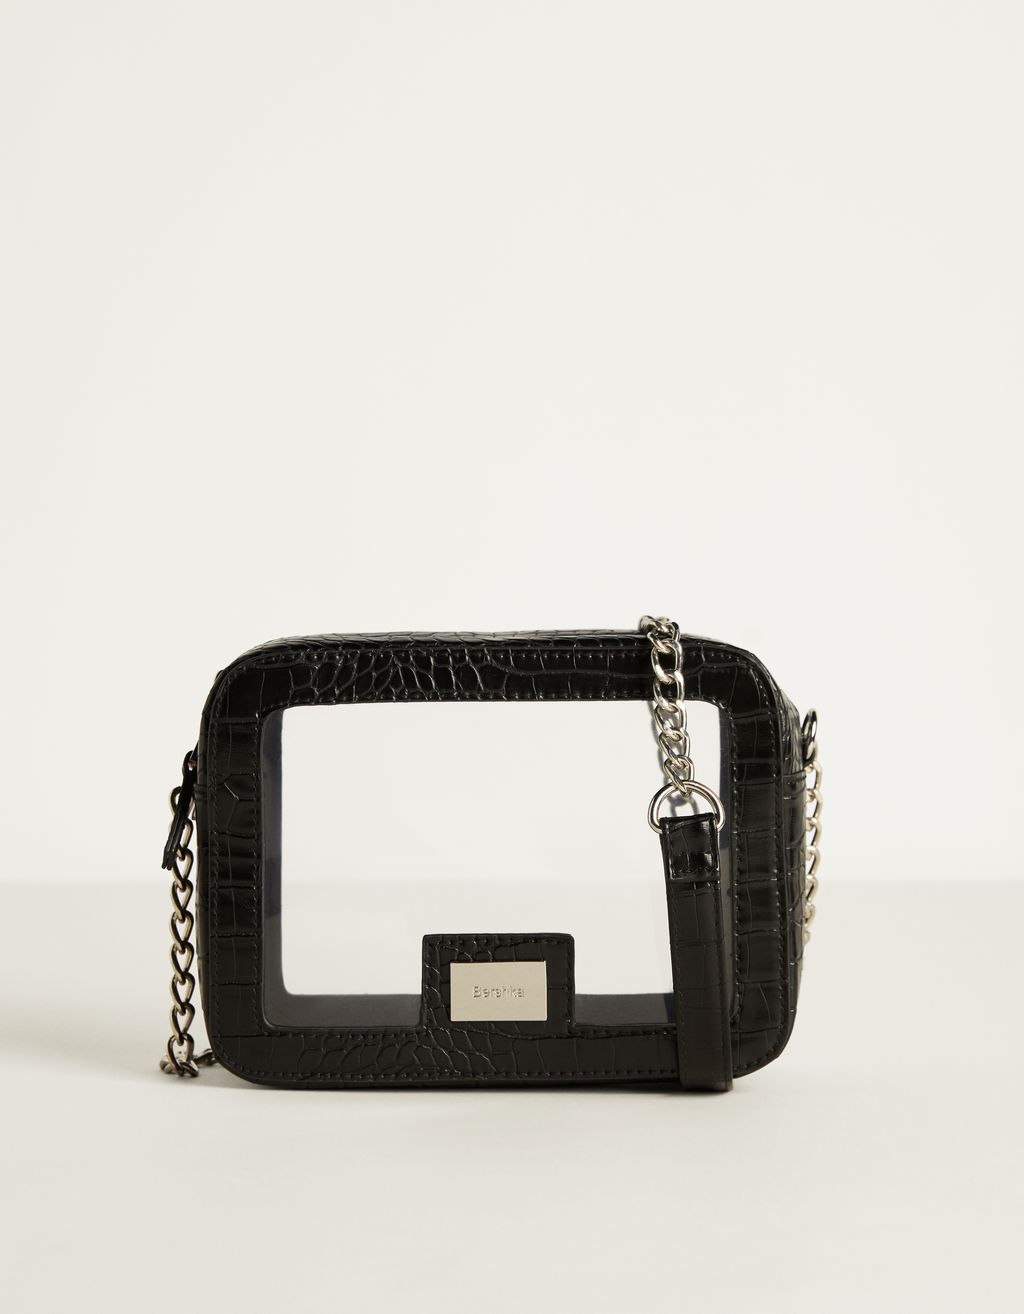 Clear handbag with chain